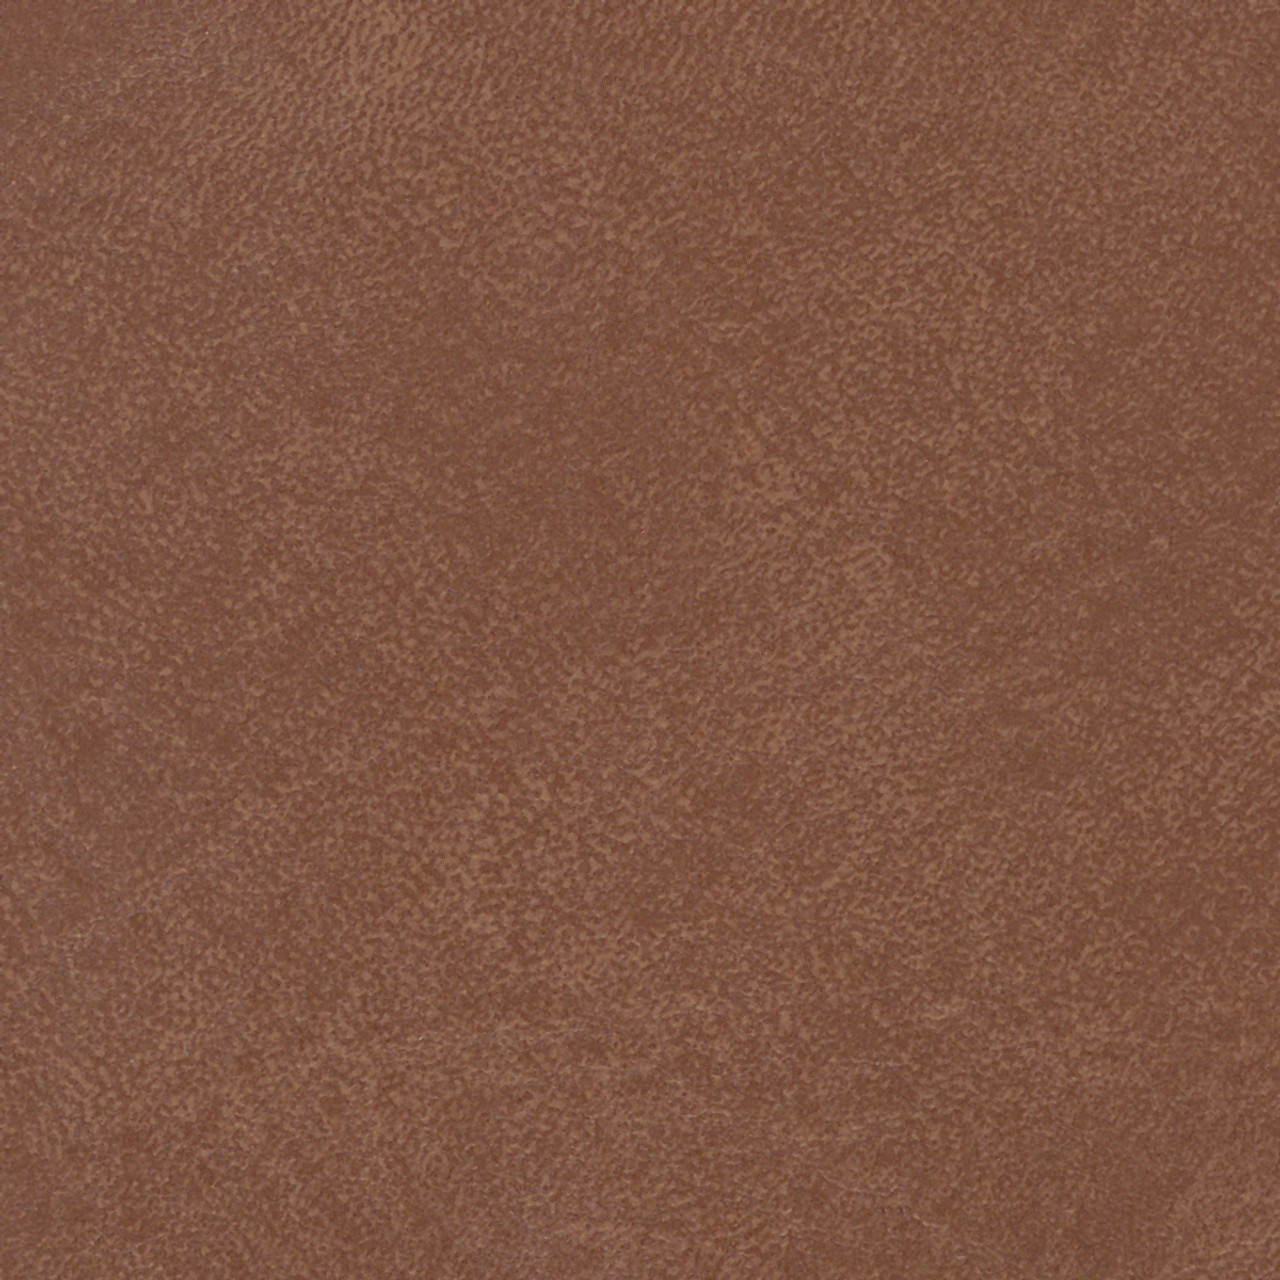 Seabreeze SEA-860 Ginseng Brown